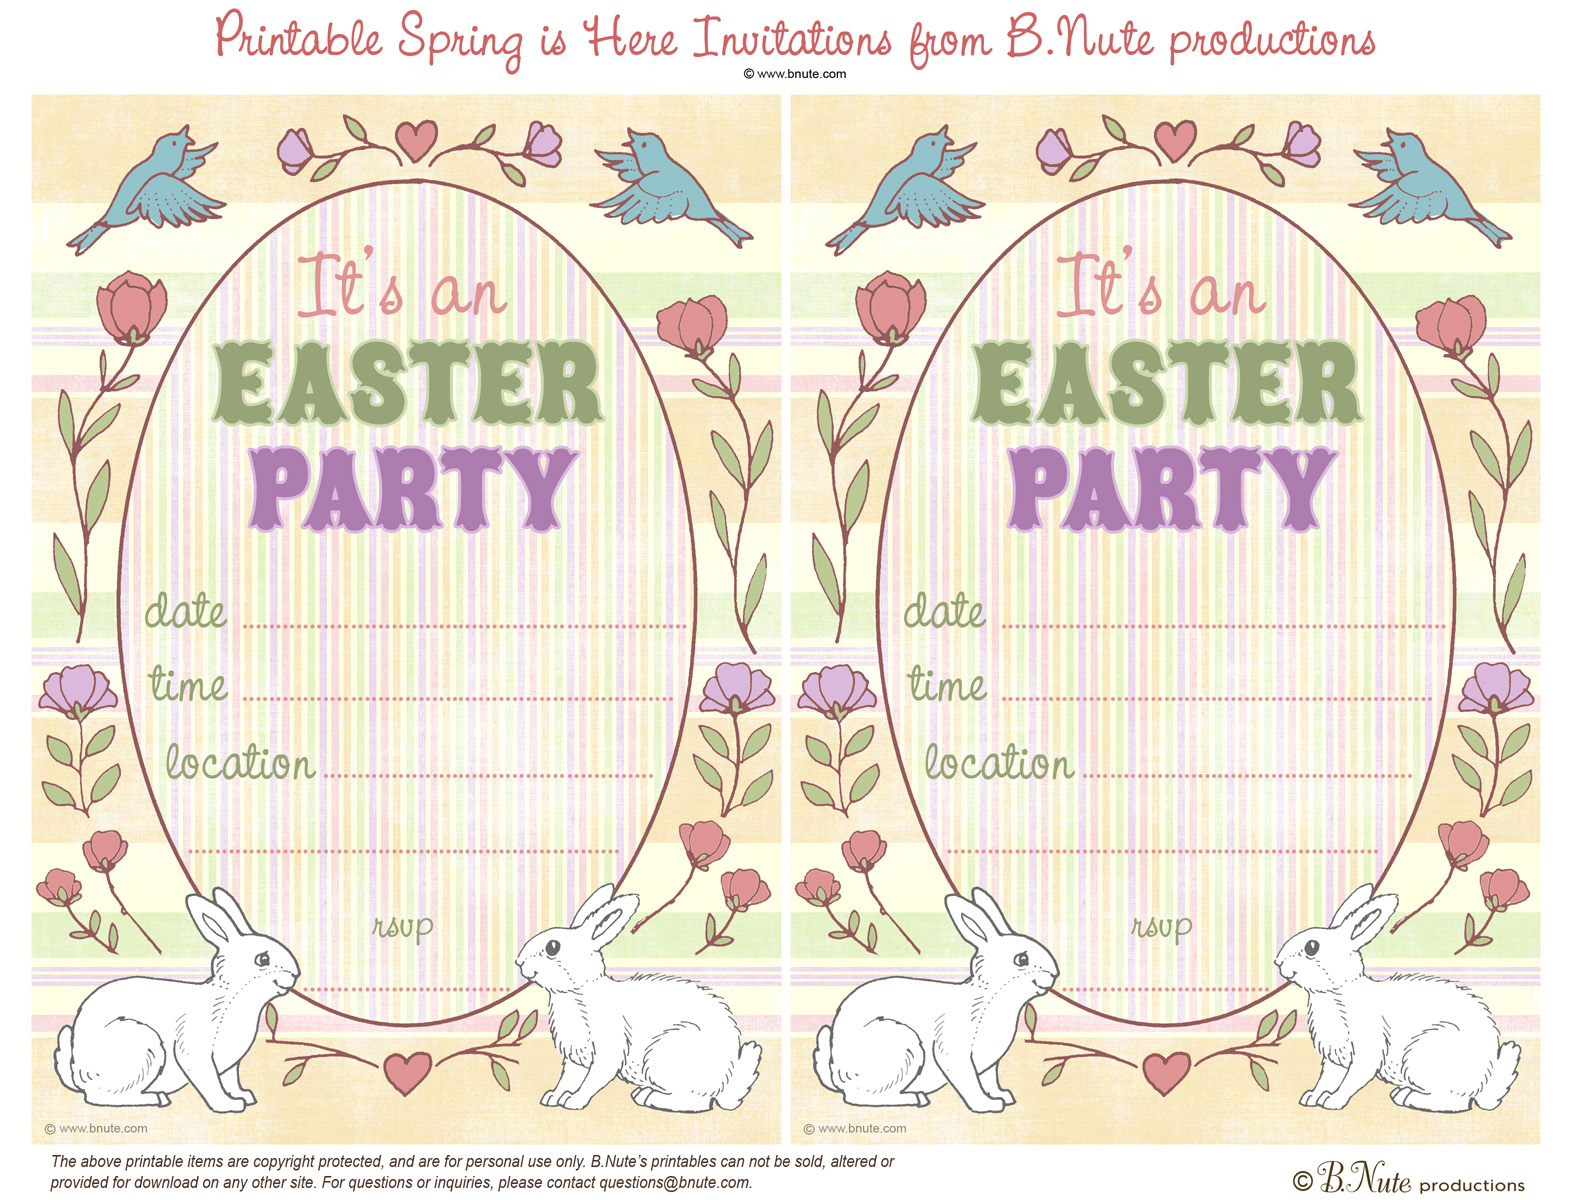 bnute productions free printable spring is here easter invitations, party invitations